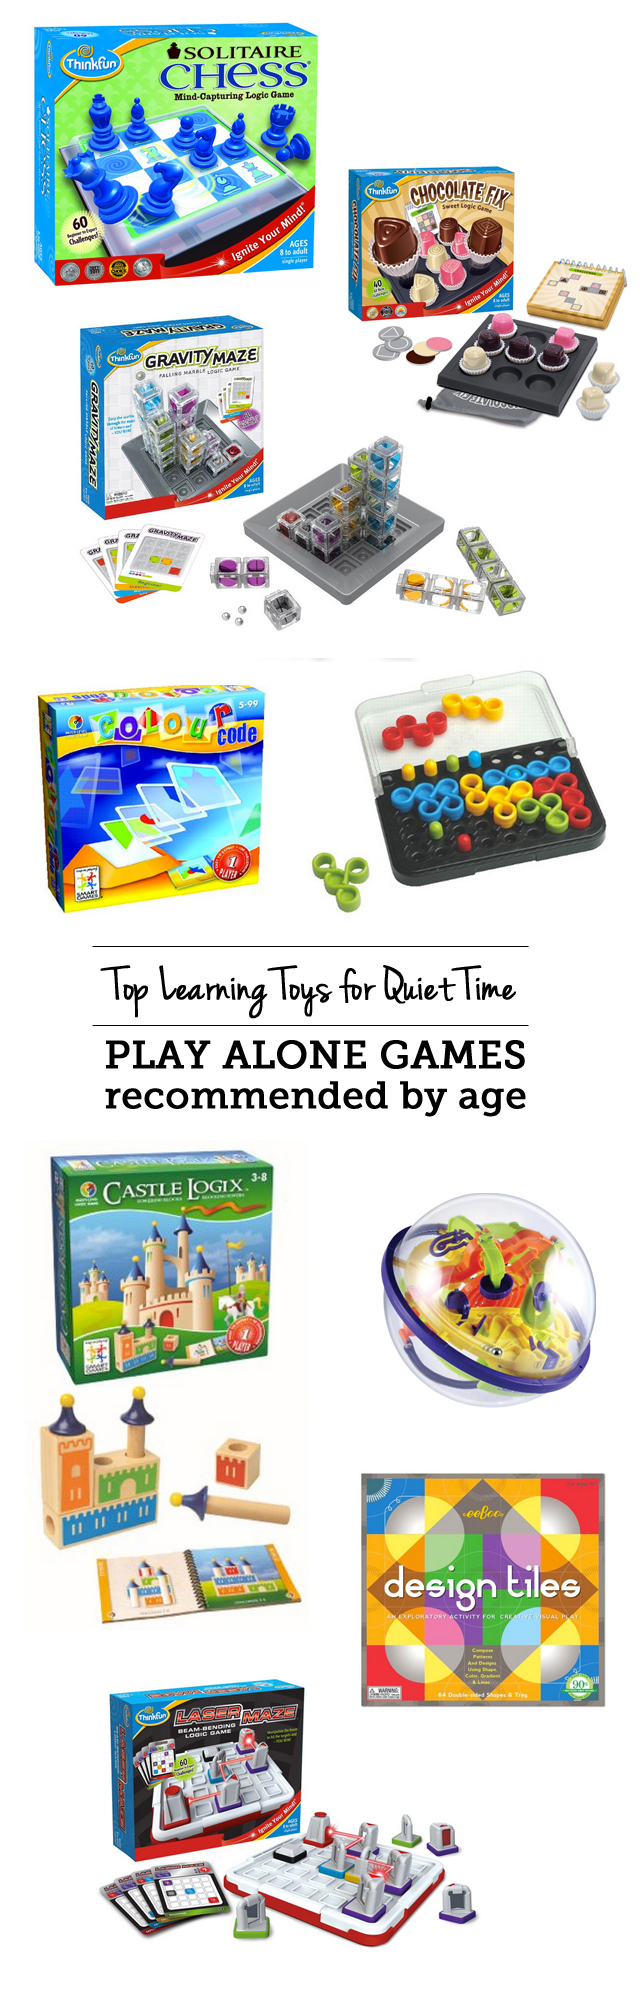 Best Educational Toy Site : Mpmk gift guide top picks for family game night modern